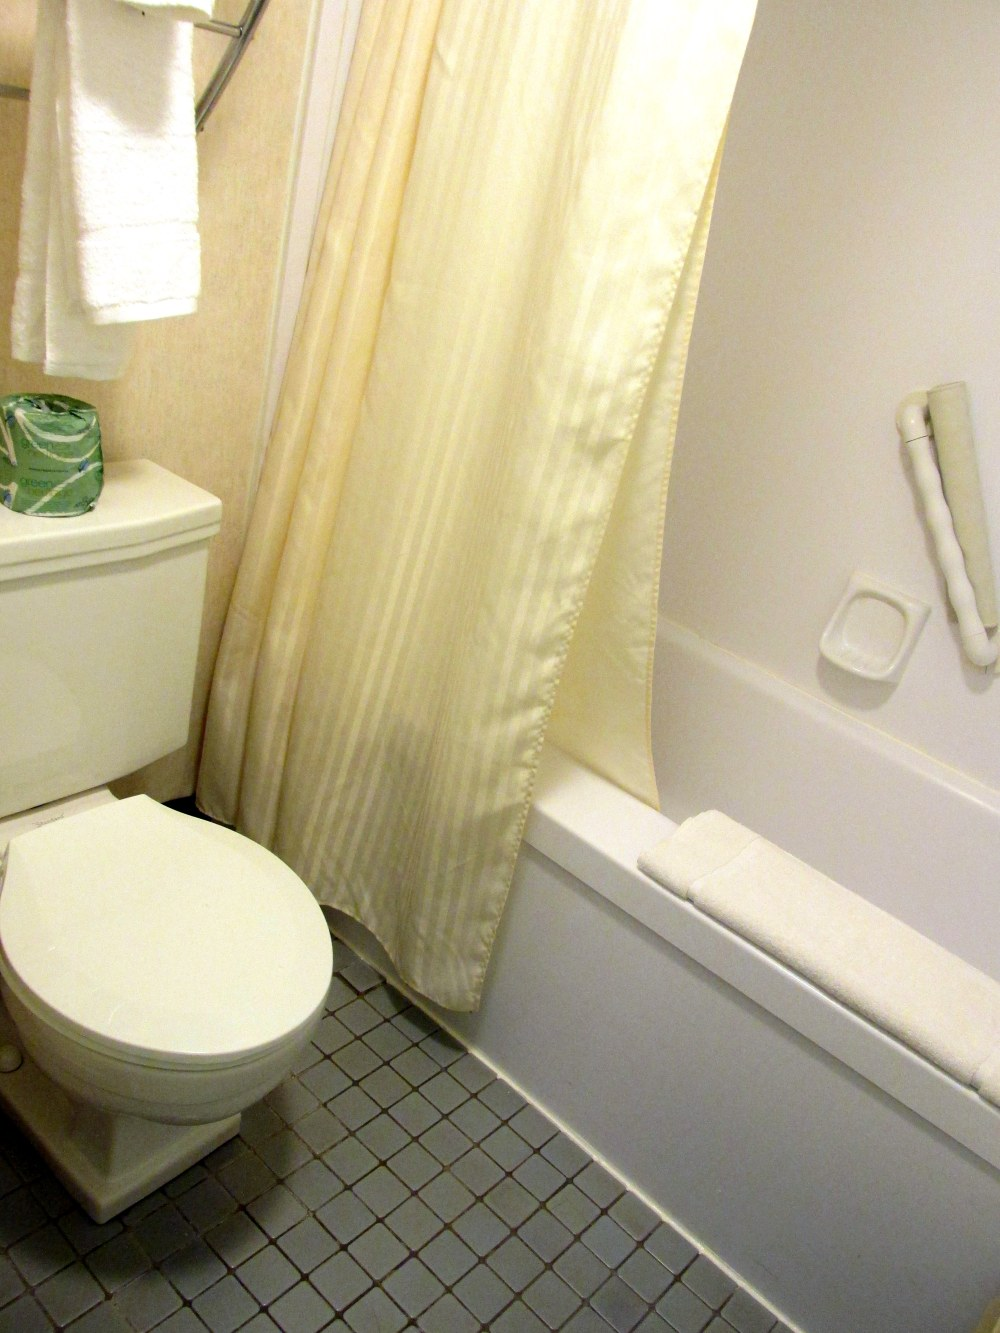 bathroomtoiletshowerMidtownHotelroomBoston28Feb2015